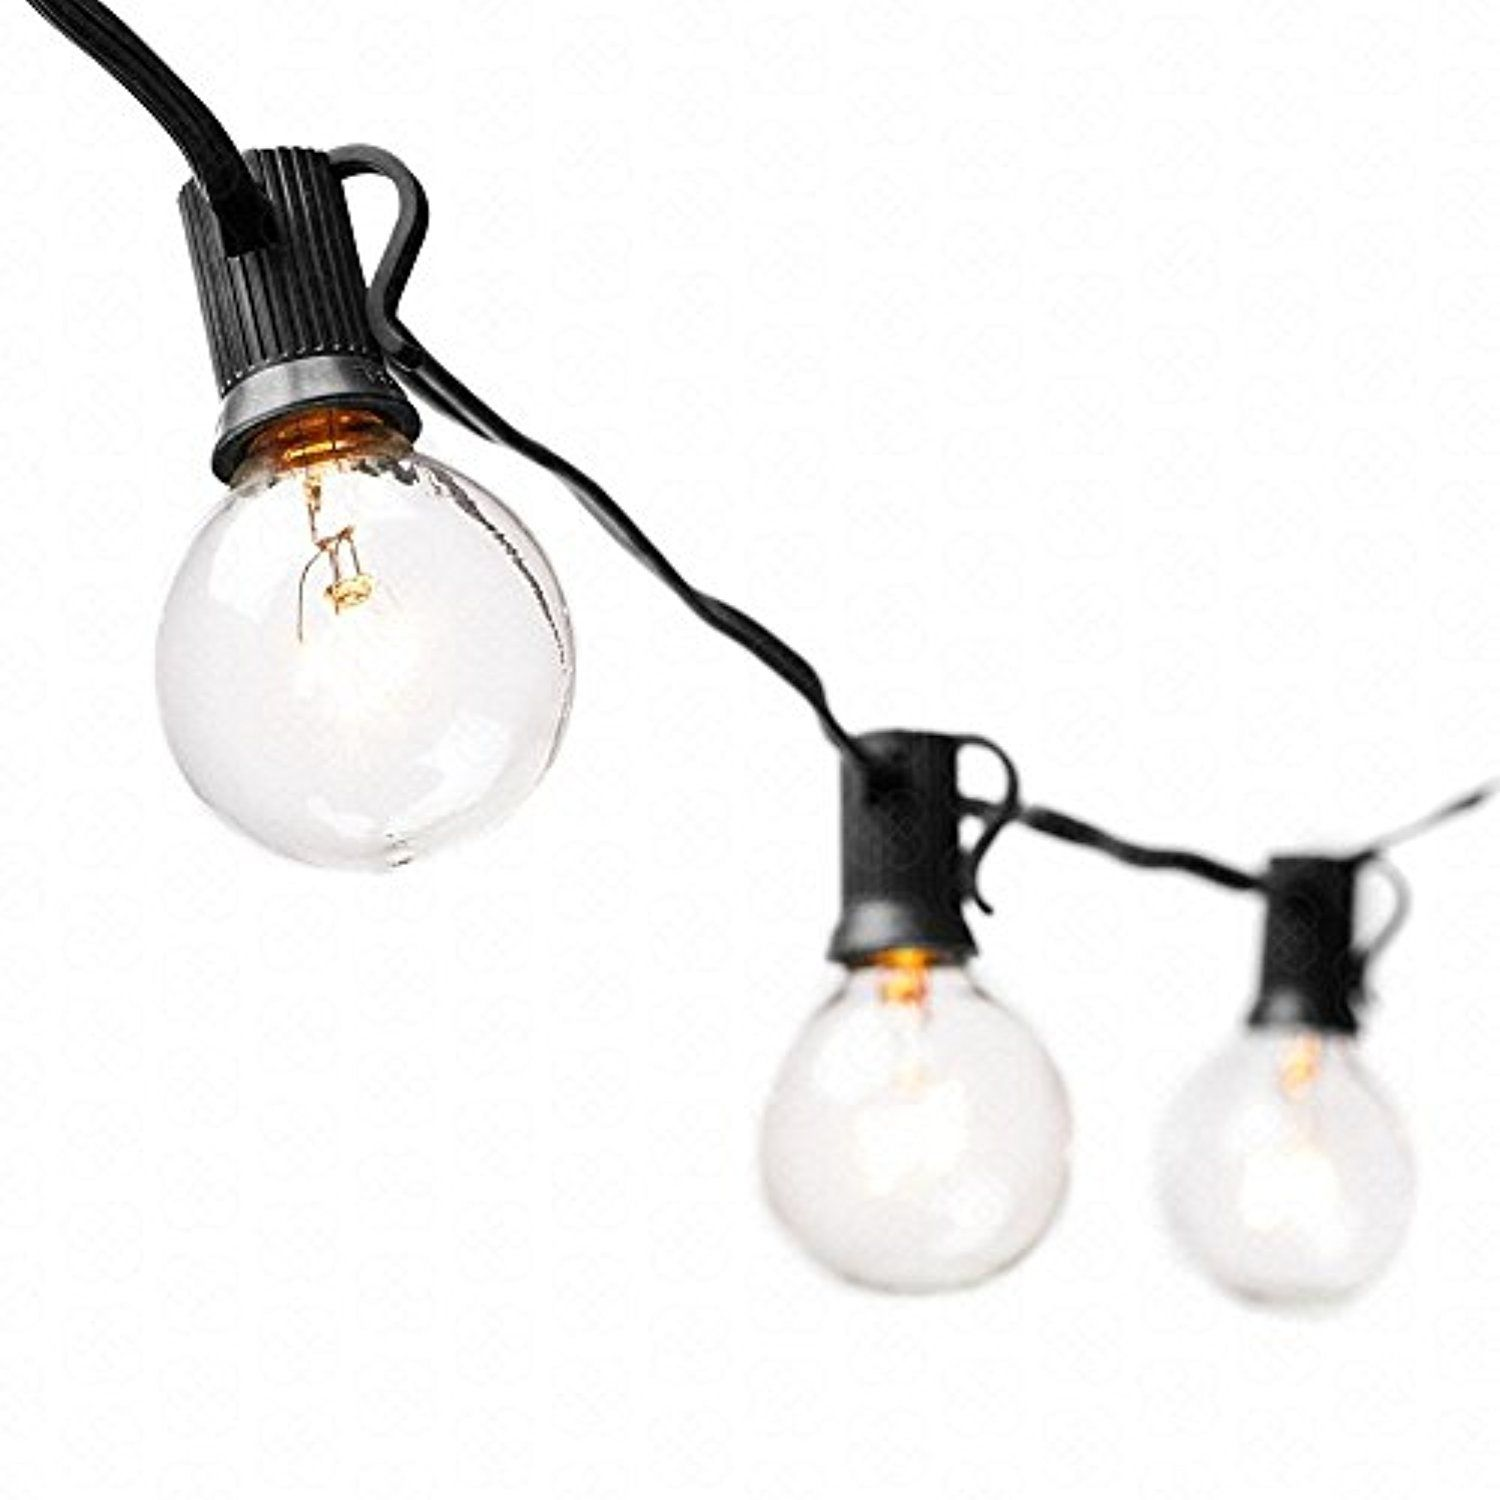 String Light Bulbs Vintage Backyard Patio Lights Outdoor 25 Feed G40 Bulbs  String Lights Bistro Market Part 44